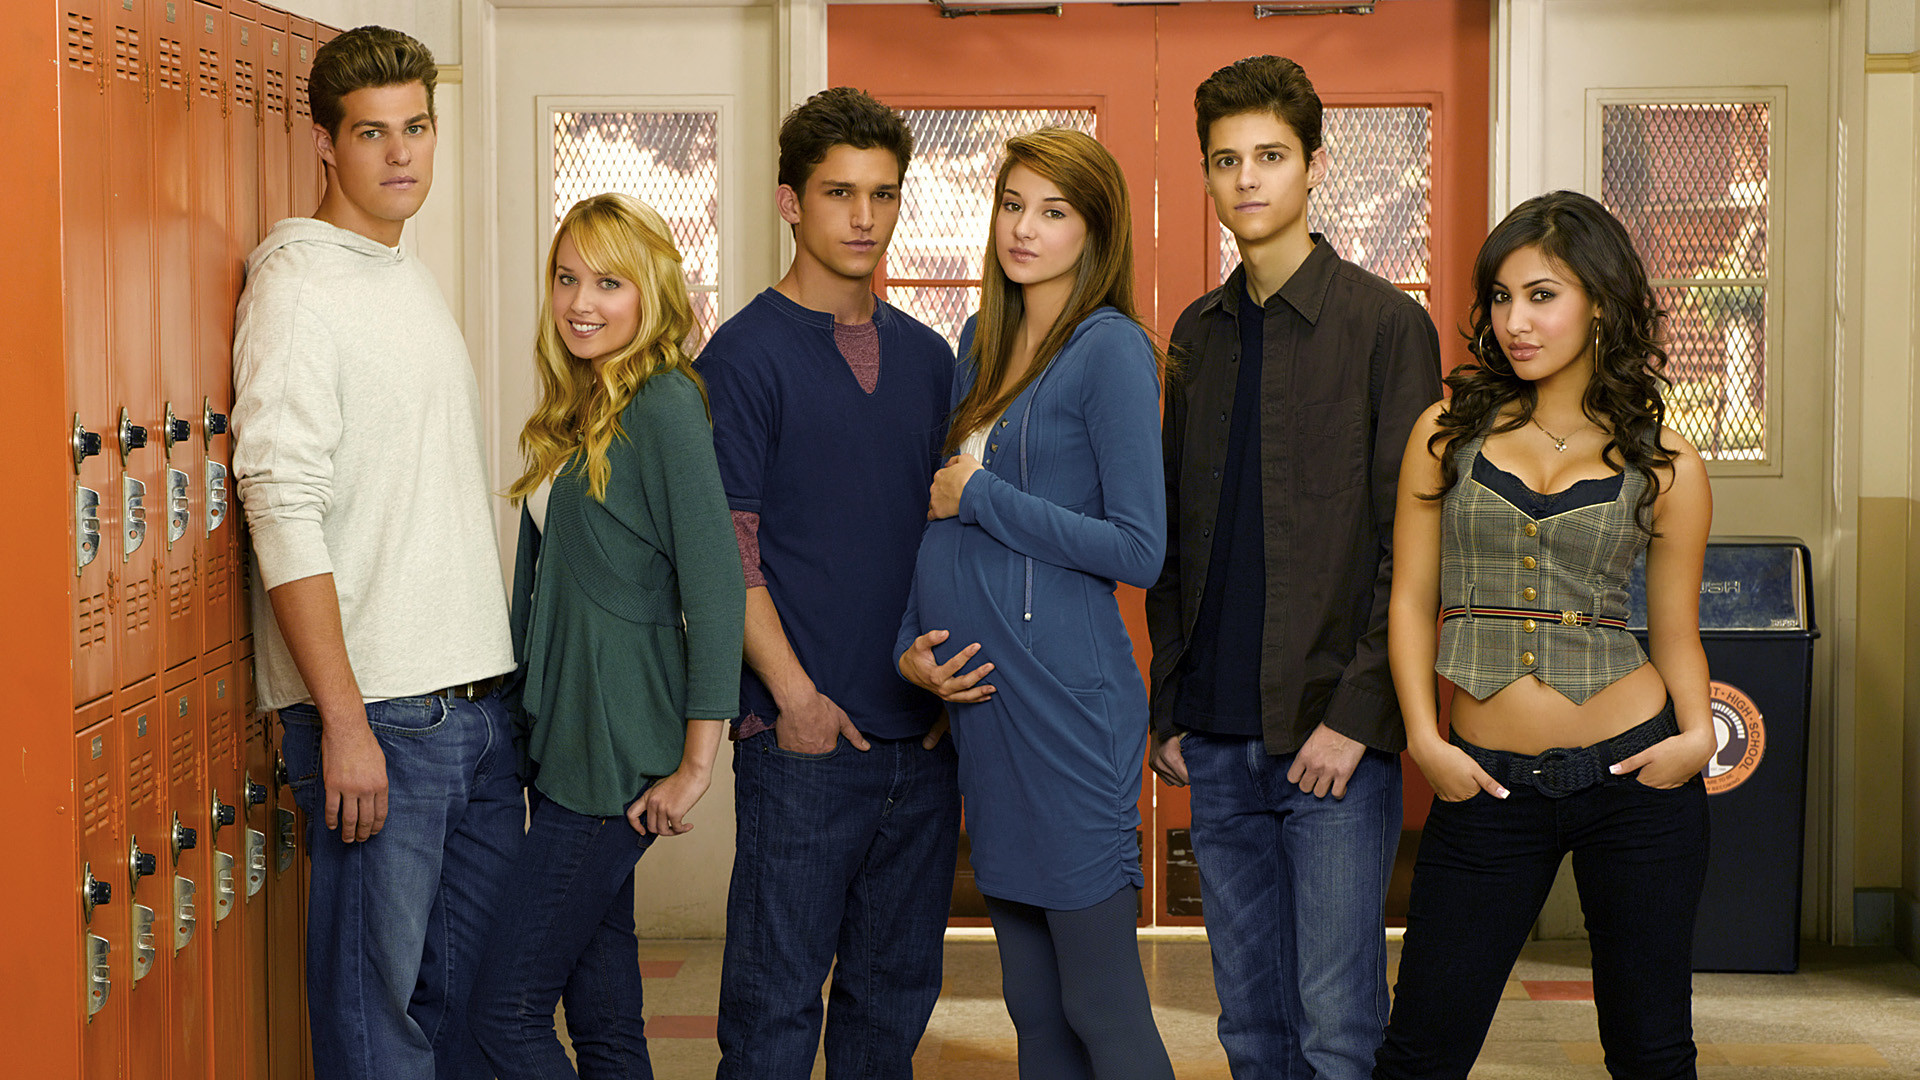 The Secret Life of the American Teenager (S01E04): Caught Summary - Season 1 Episode 4 Guide